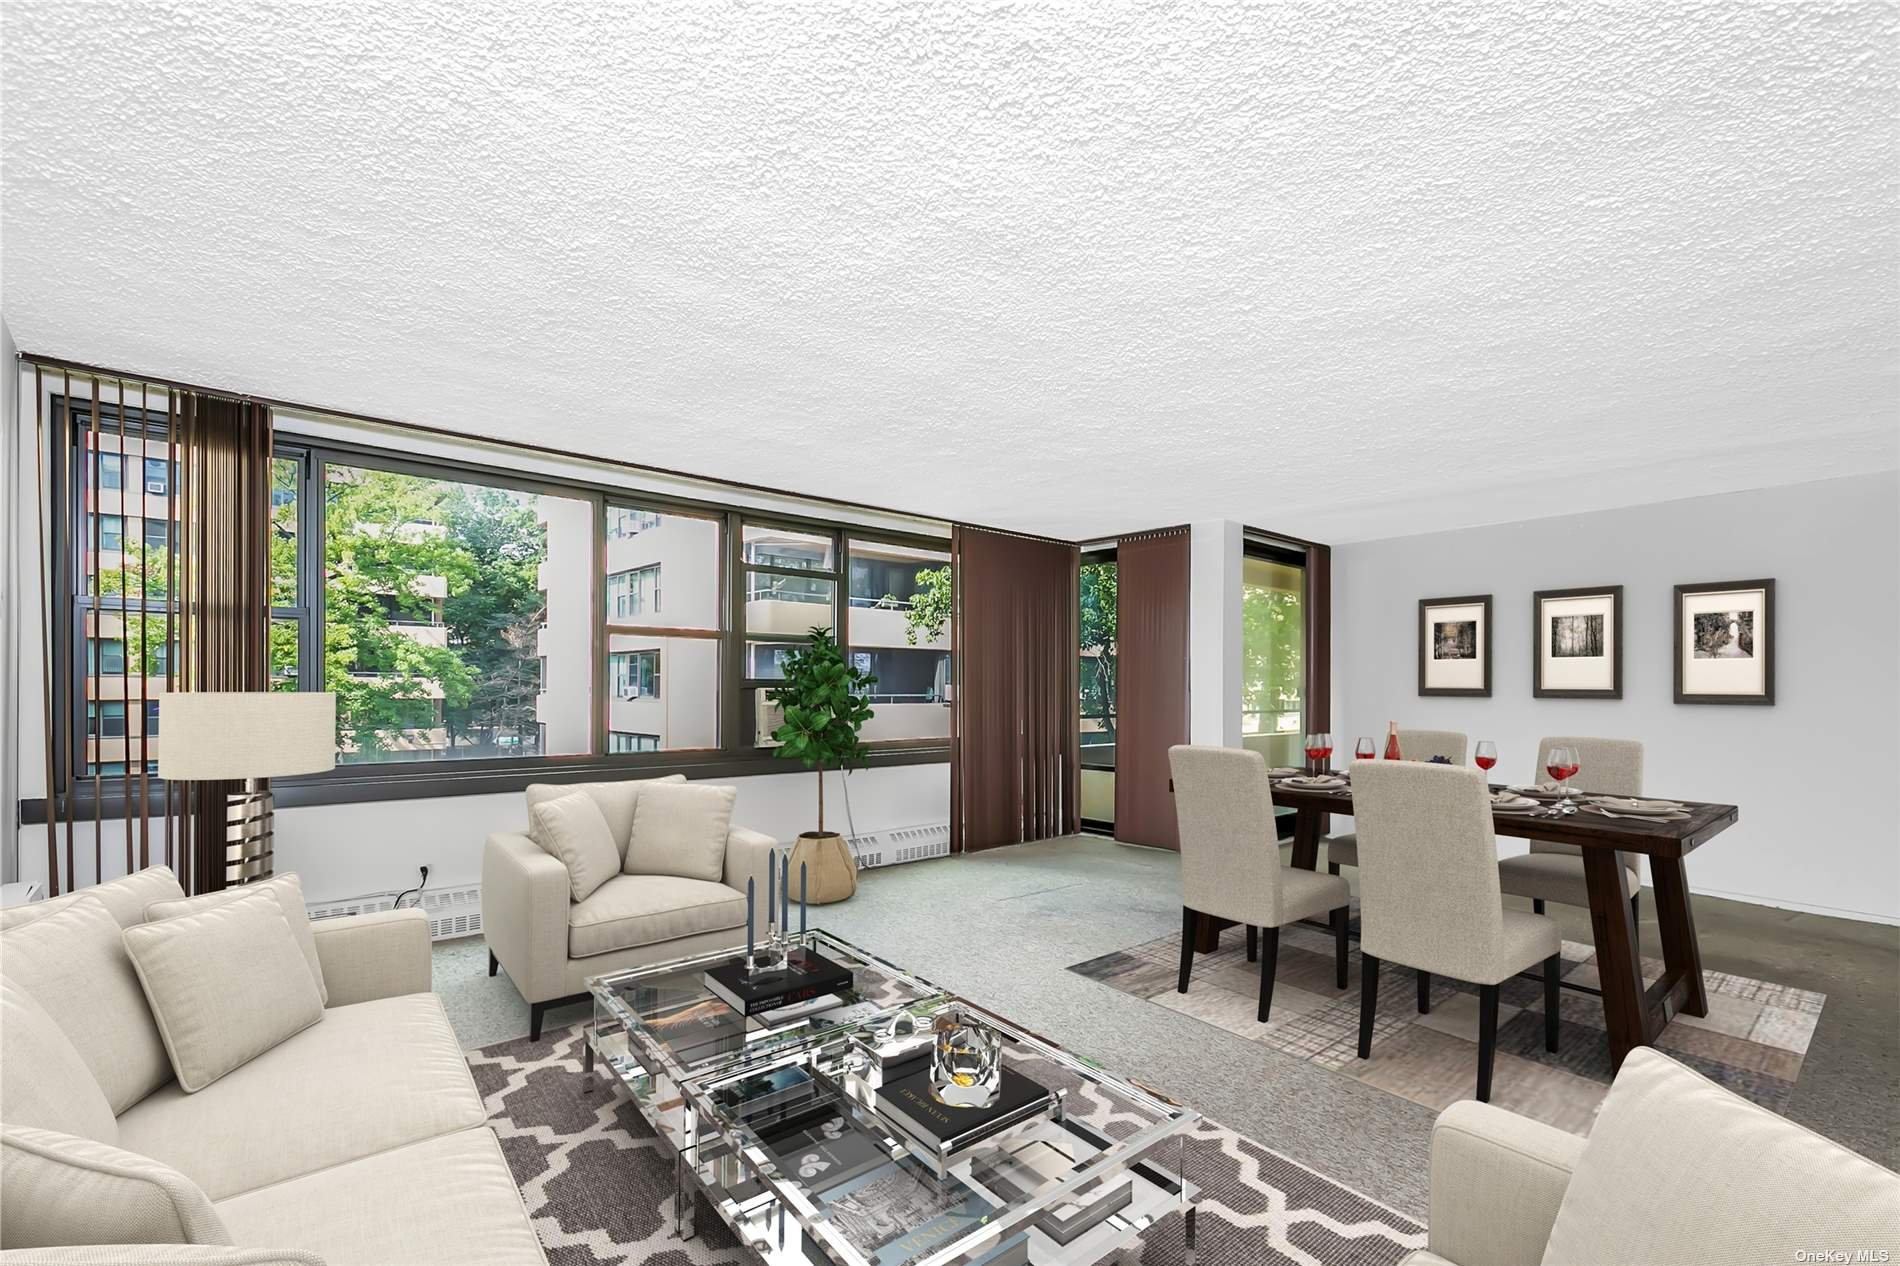 Sun drenched apt with updated kitchen with granite counter tops. Updated bath.  Corner unit with large terrace. Prime parking space  R15 included in sale 8,500 savings...Don't miss this great opportunity.  Lehavre offers clubhouse with gym and 3 tennis courts, 2outdoor pools.